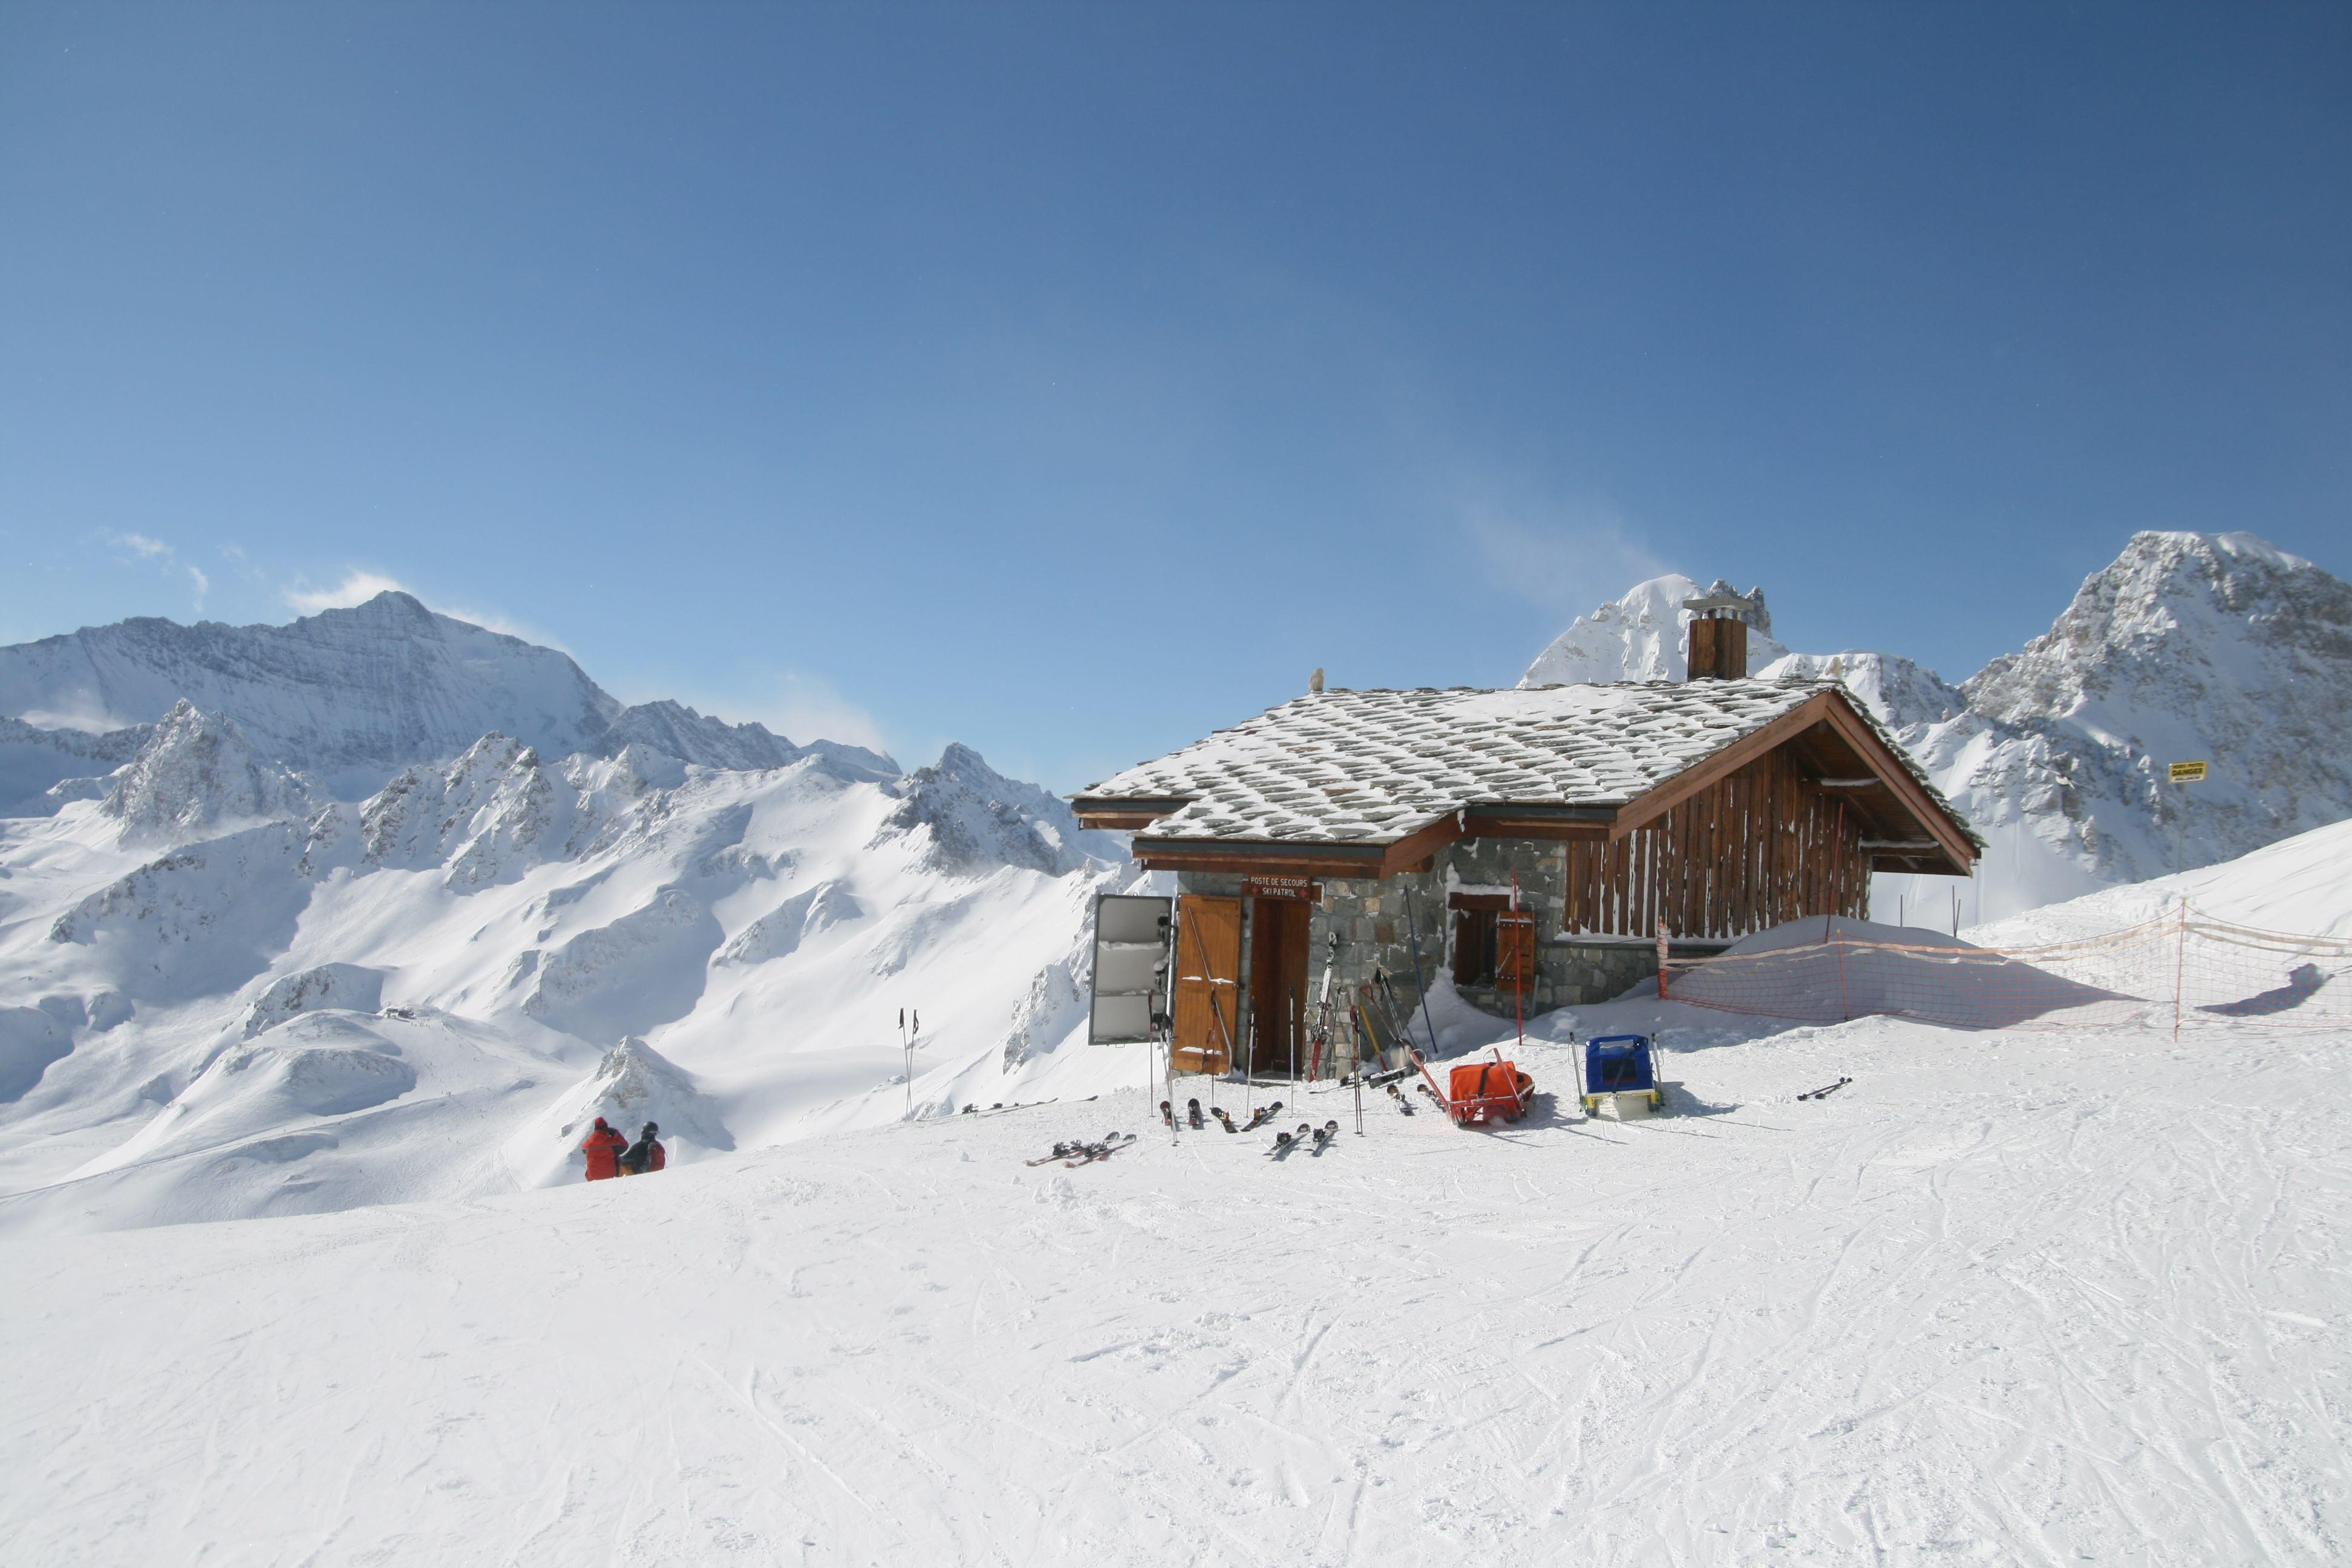 Val d'isere - a classic resort from 19th century